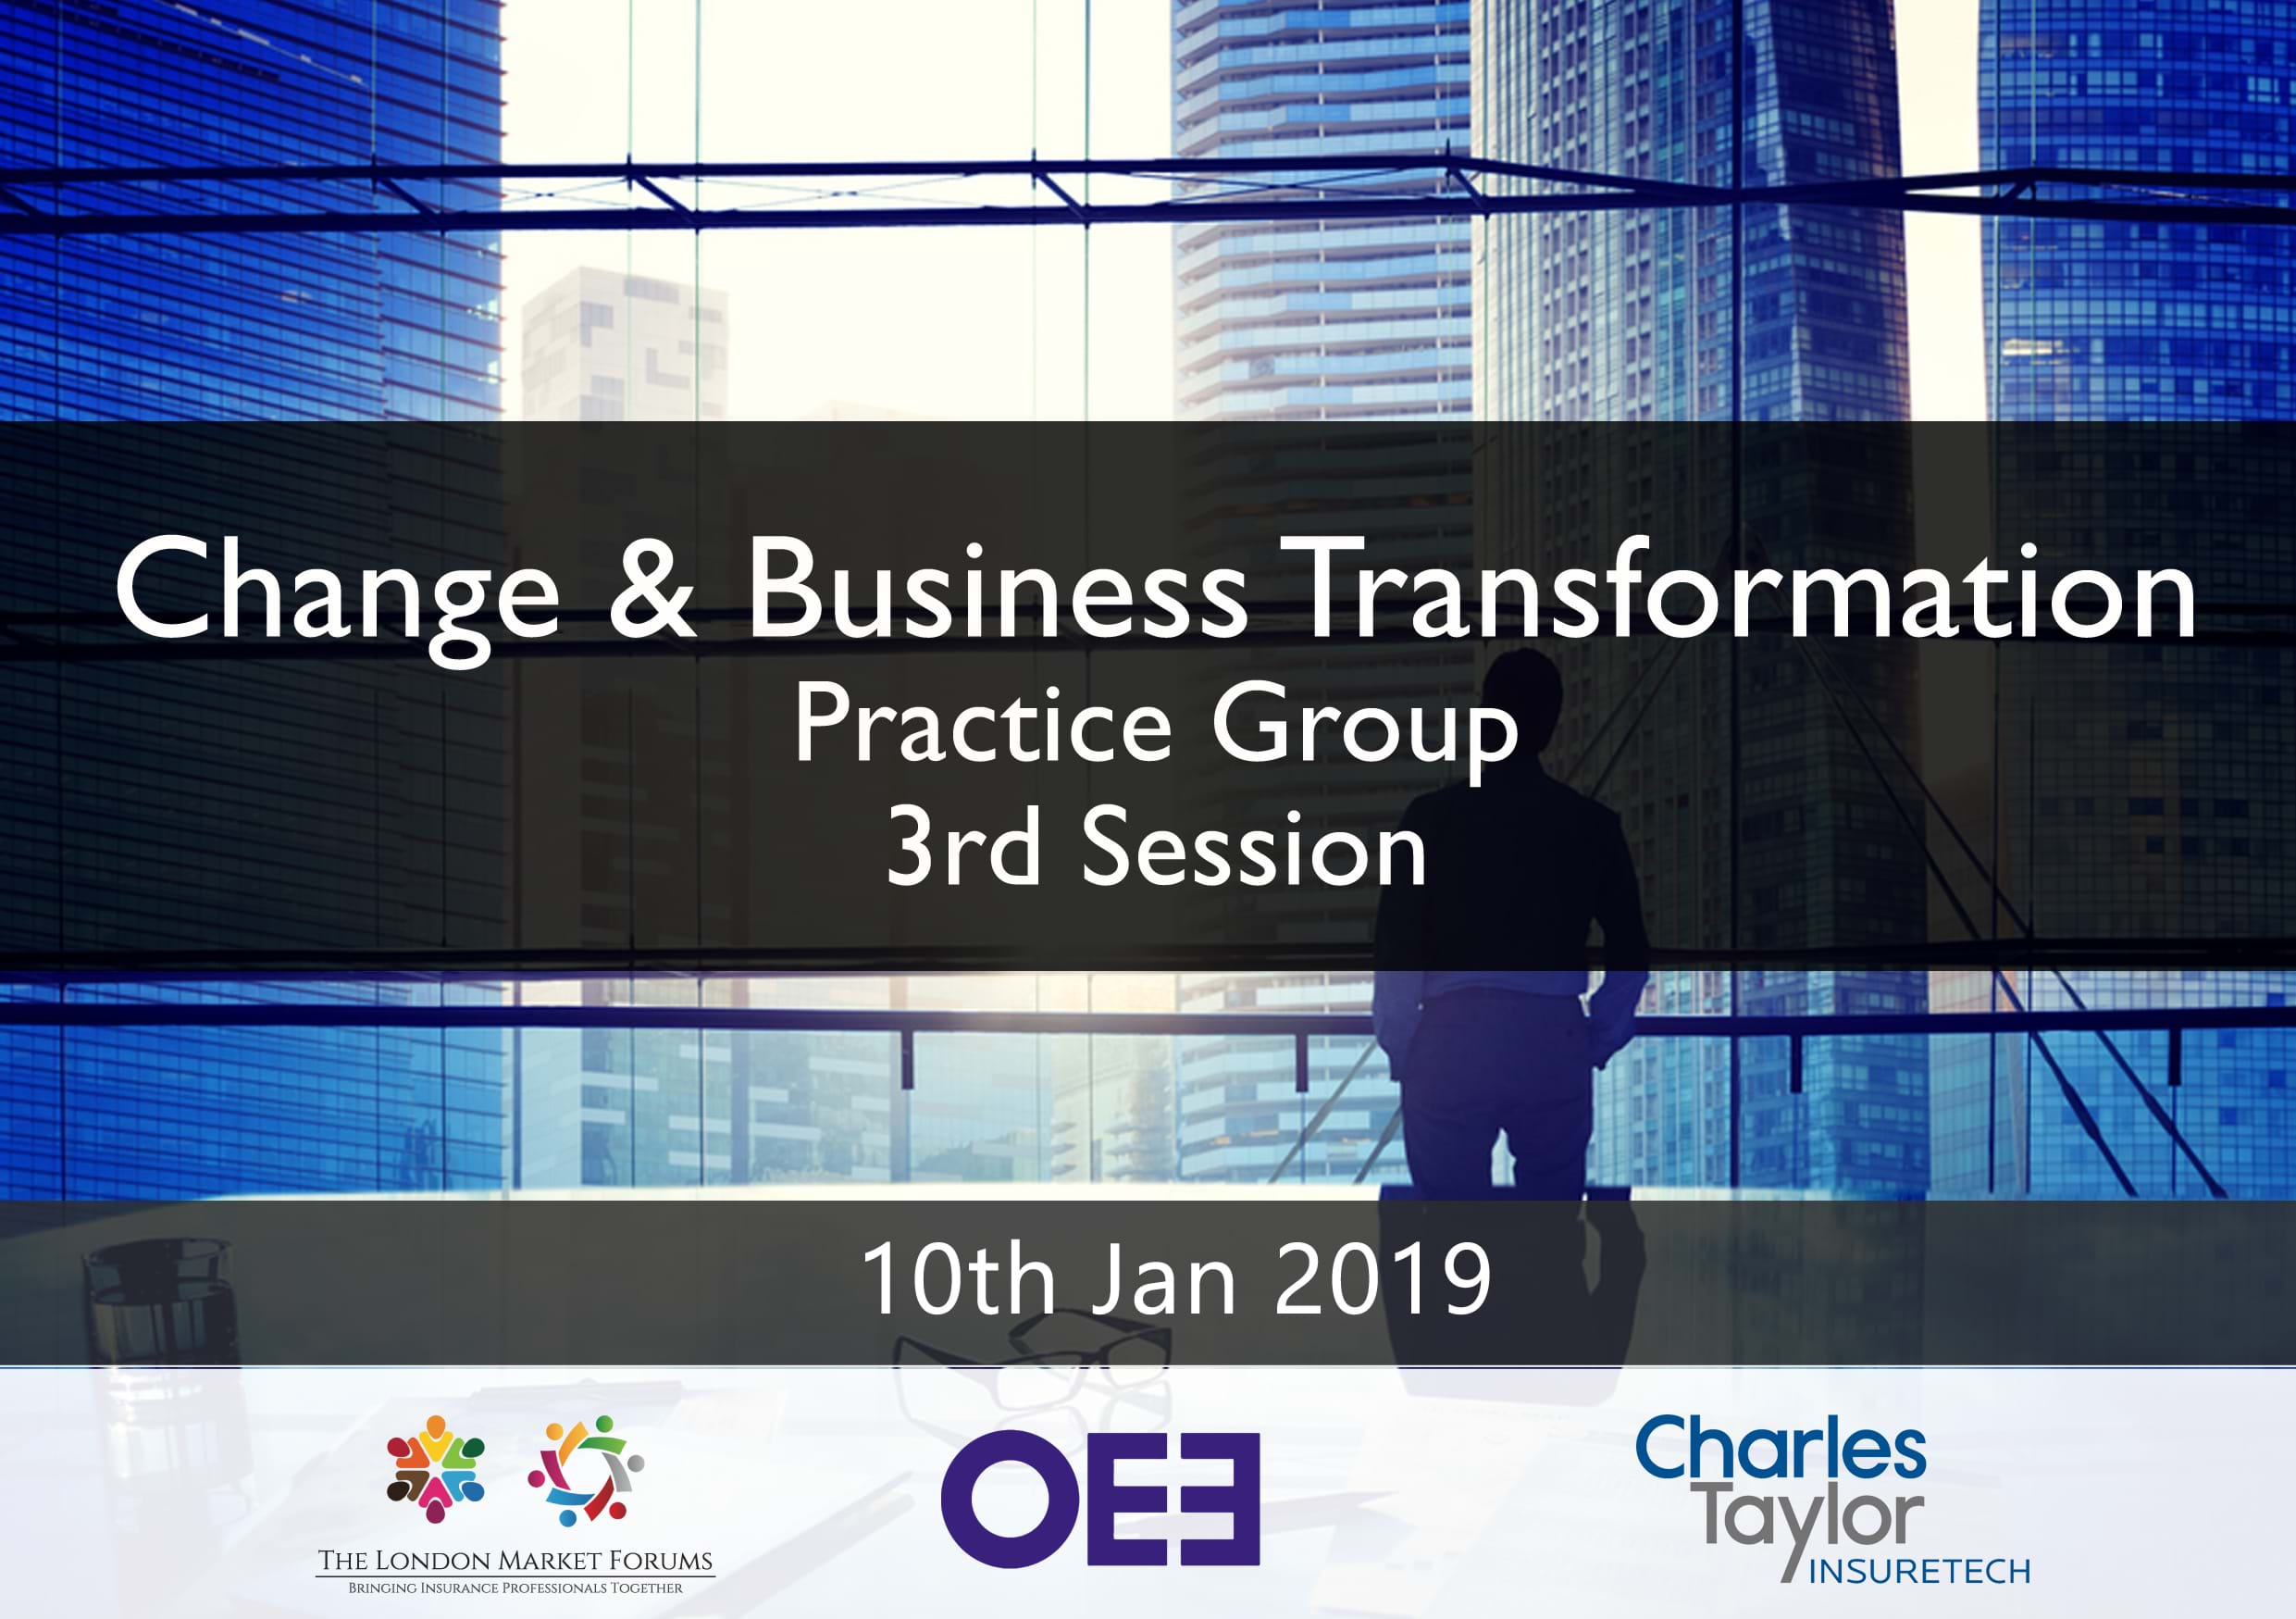 Change & Business Transformation Practice Group - 3rd Session